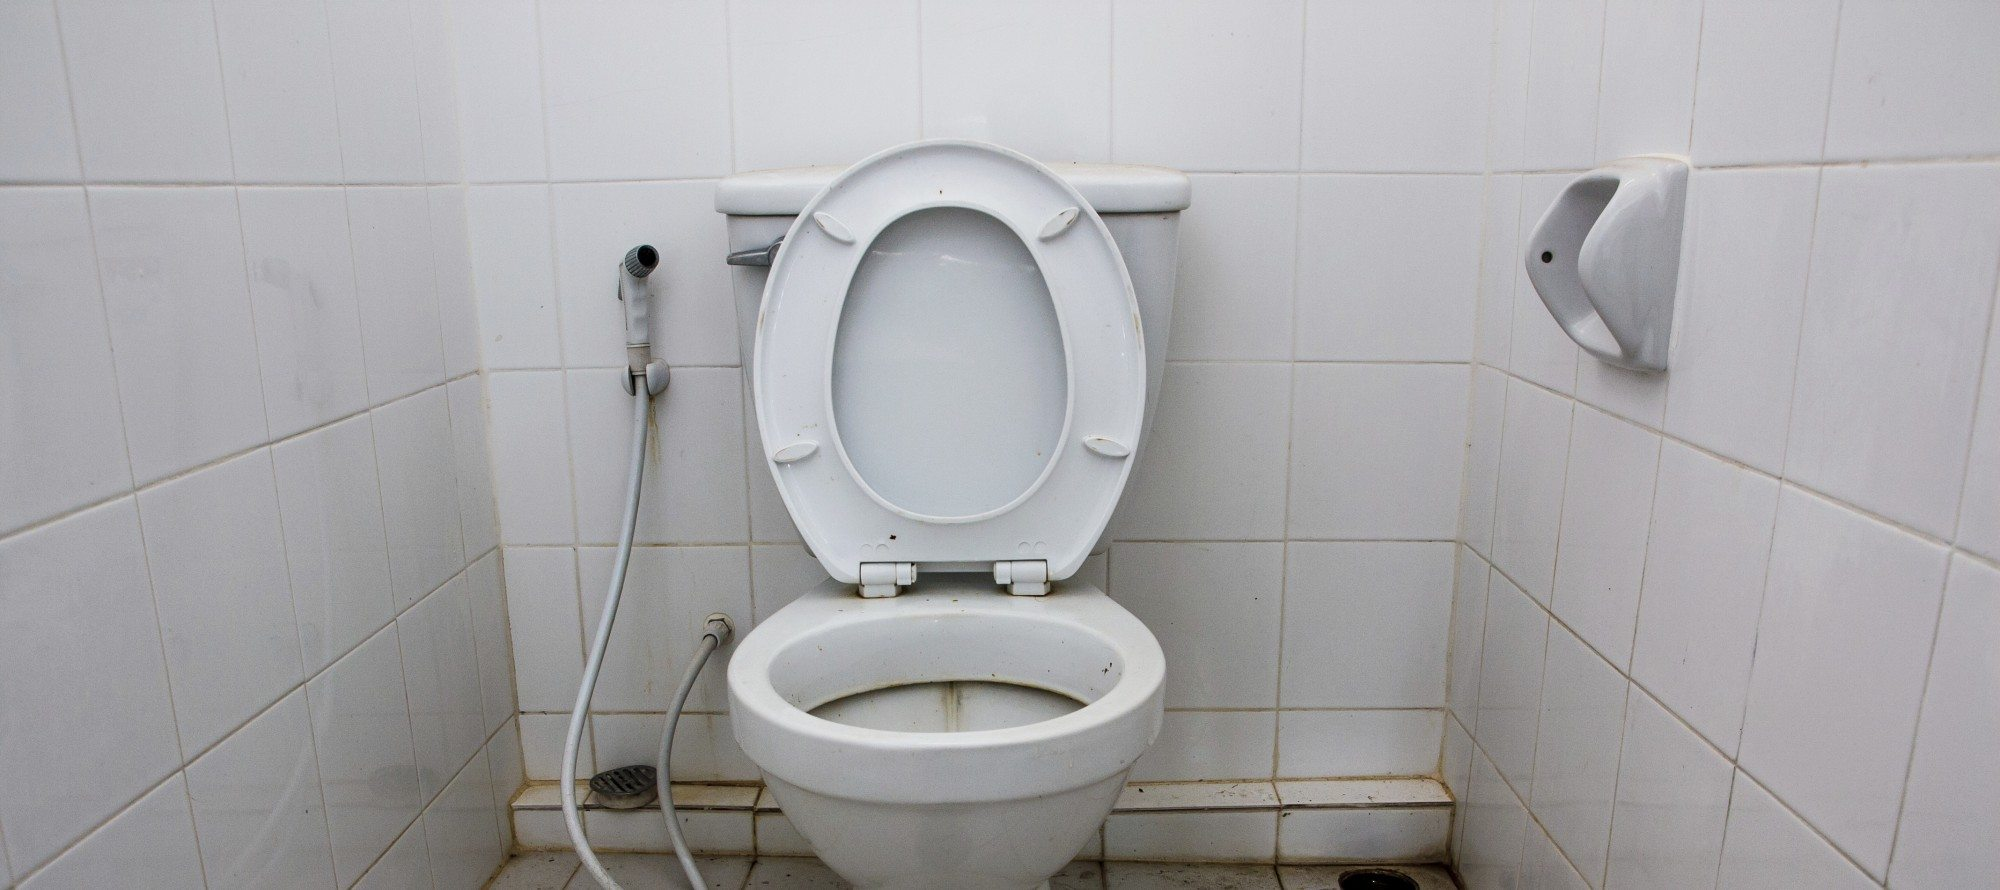 If at first you don't succeed … keep flushing